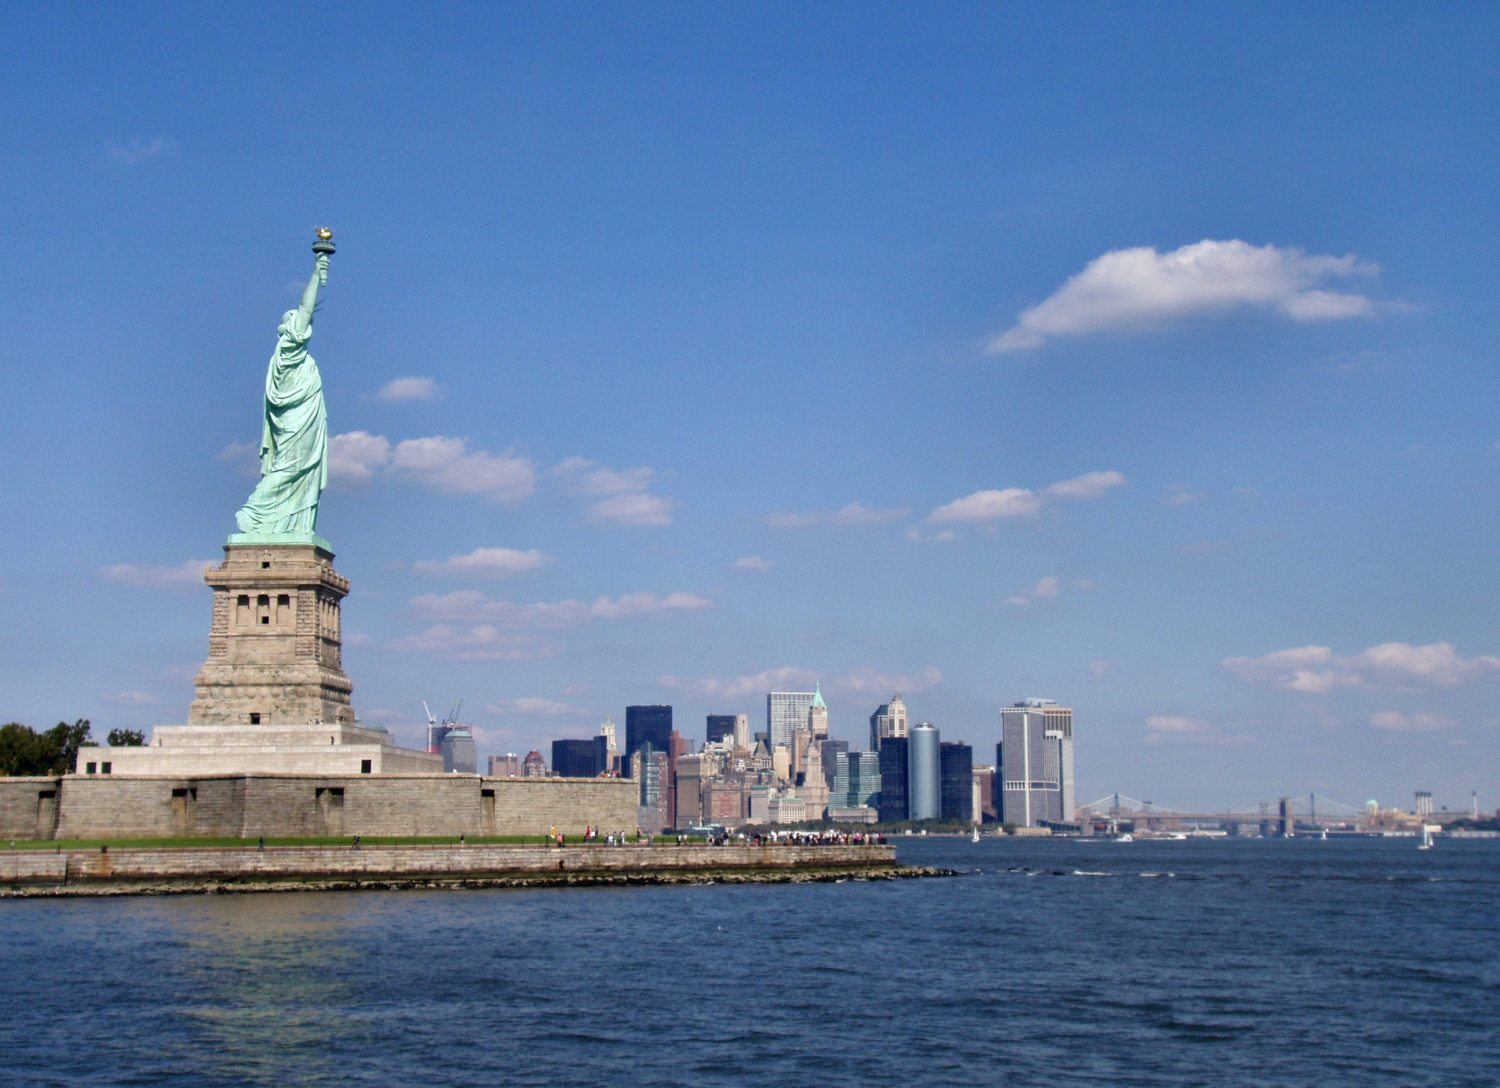 This picture shows the statue of Liberty view from Staten Island, the sky is bleu and we can see tourists